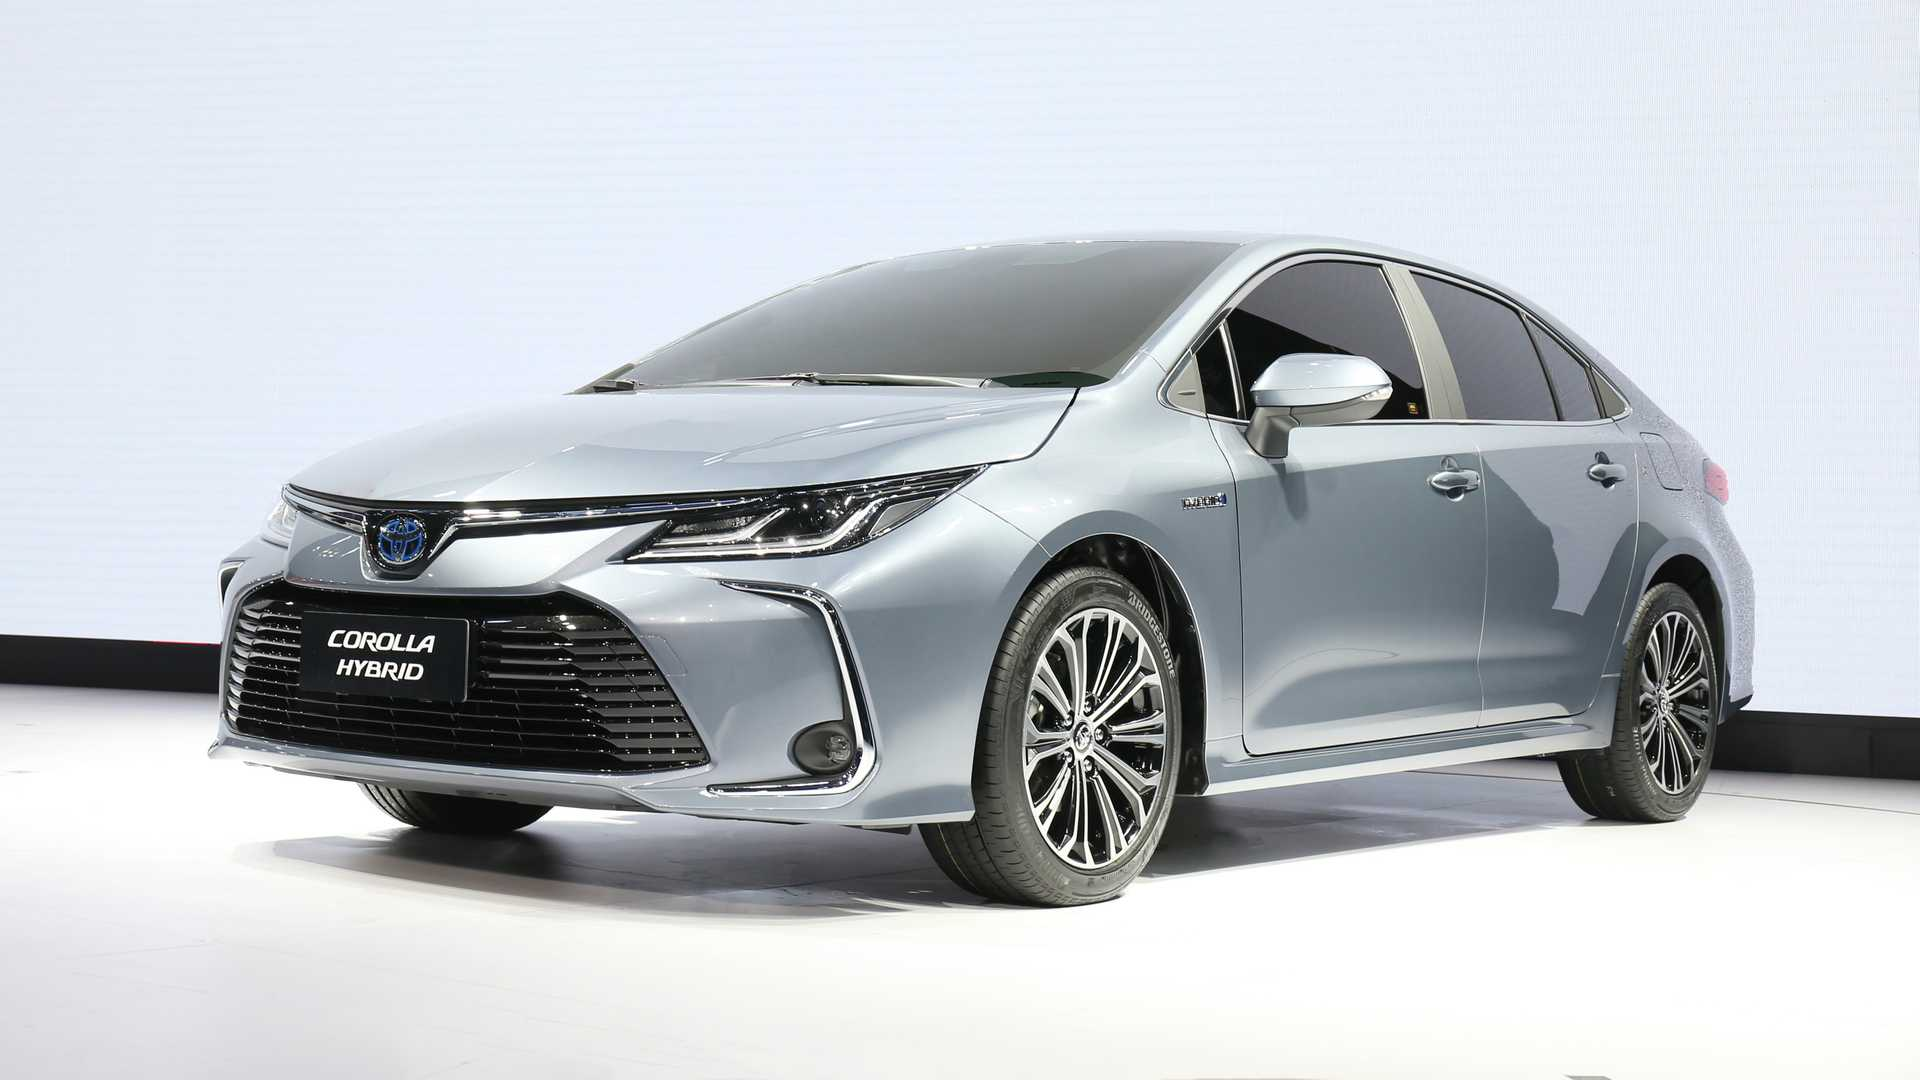 53 The Best 2020 Toyota Avensis History